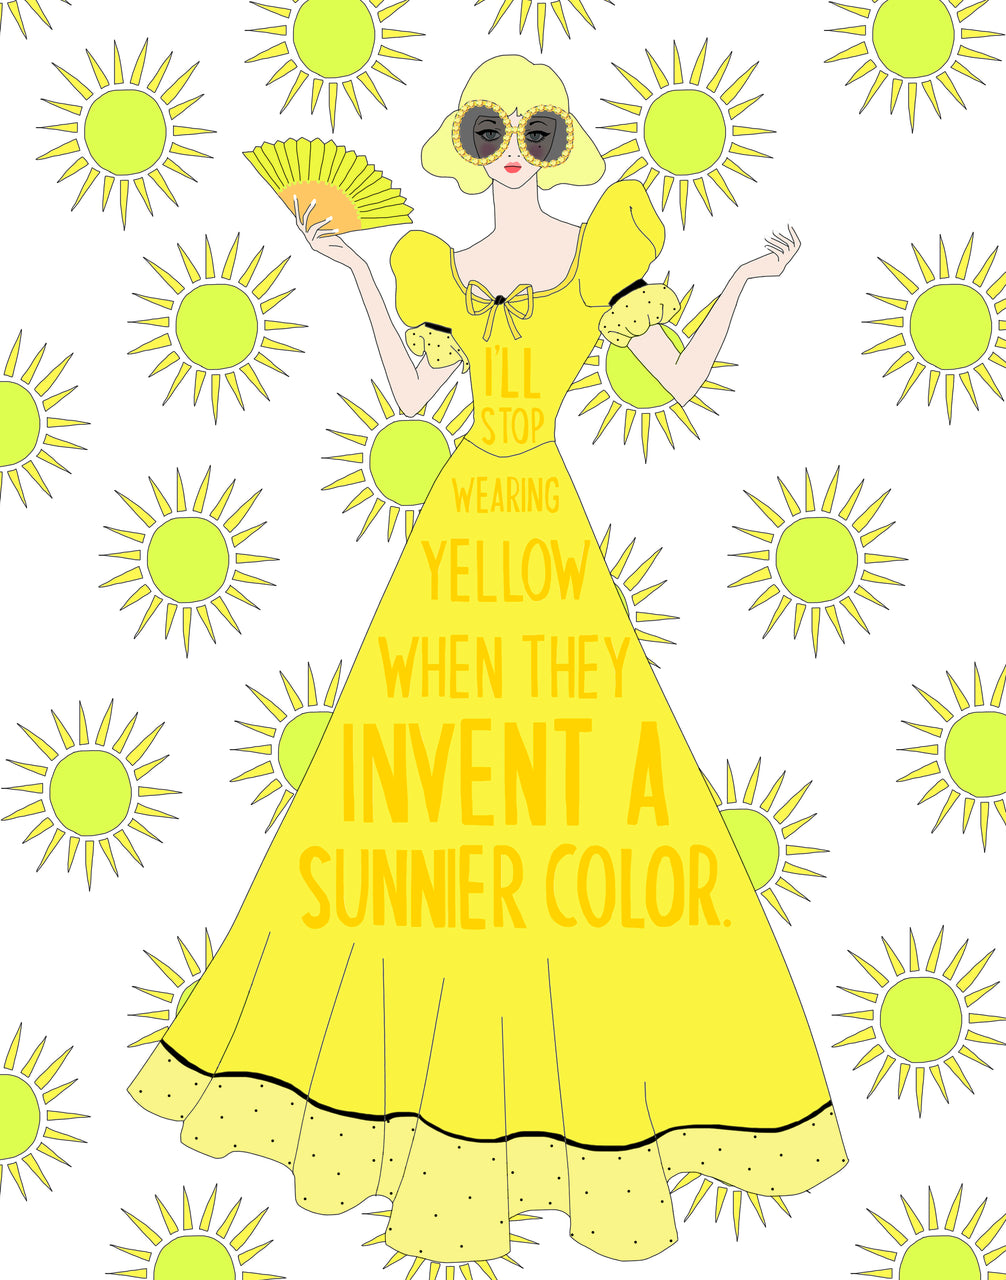 I'll Stop Wearing Yellow When They Invent a Sunnier Color.